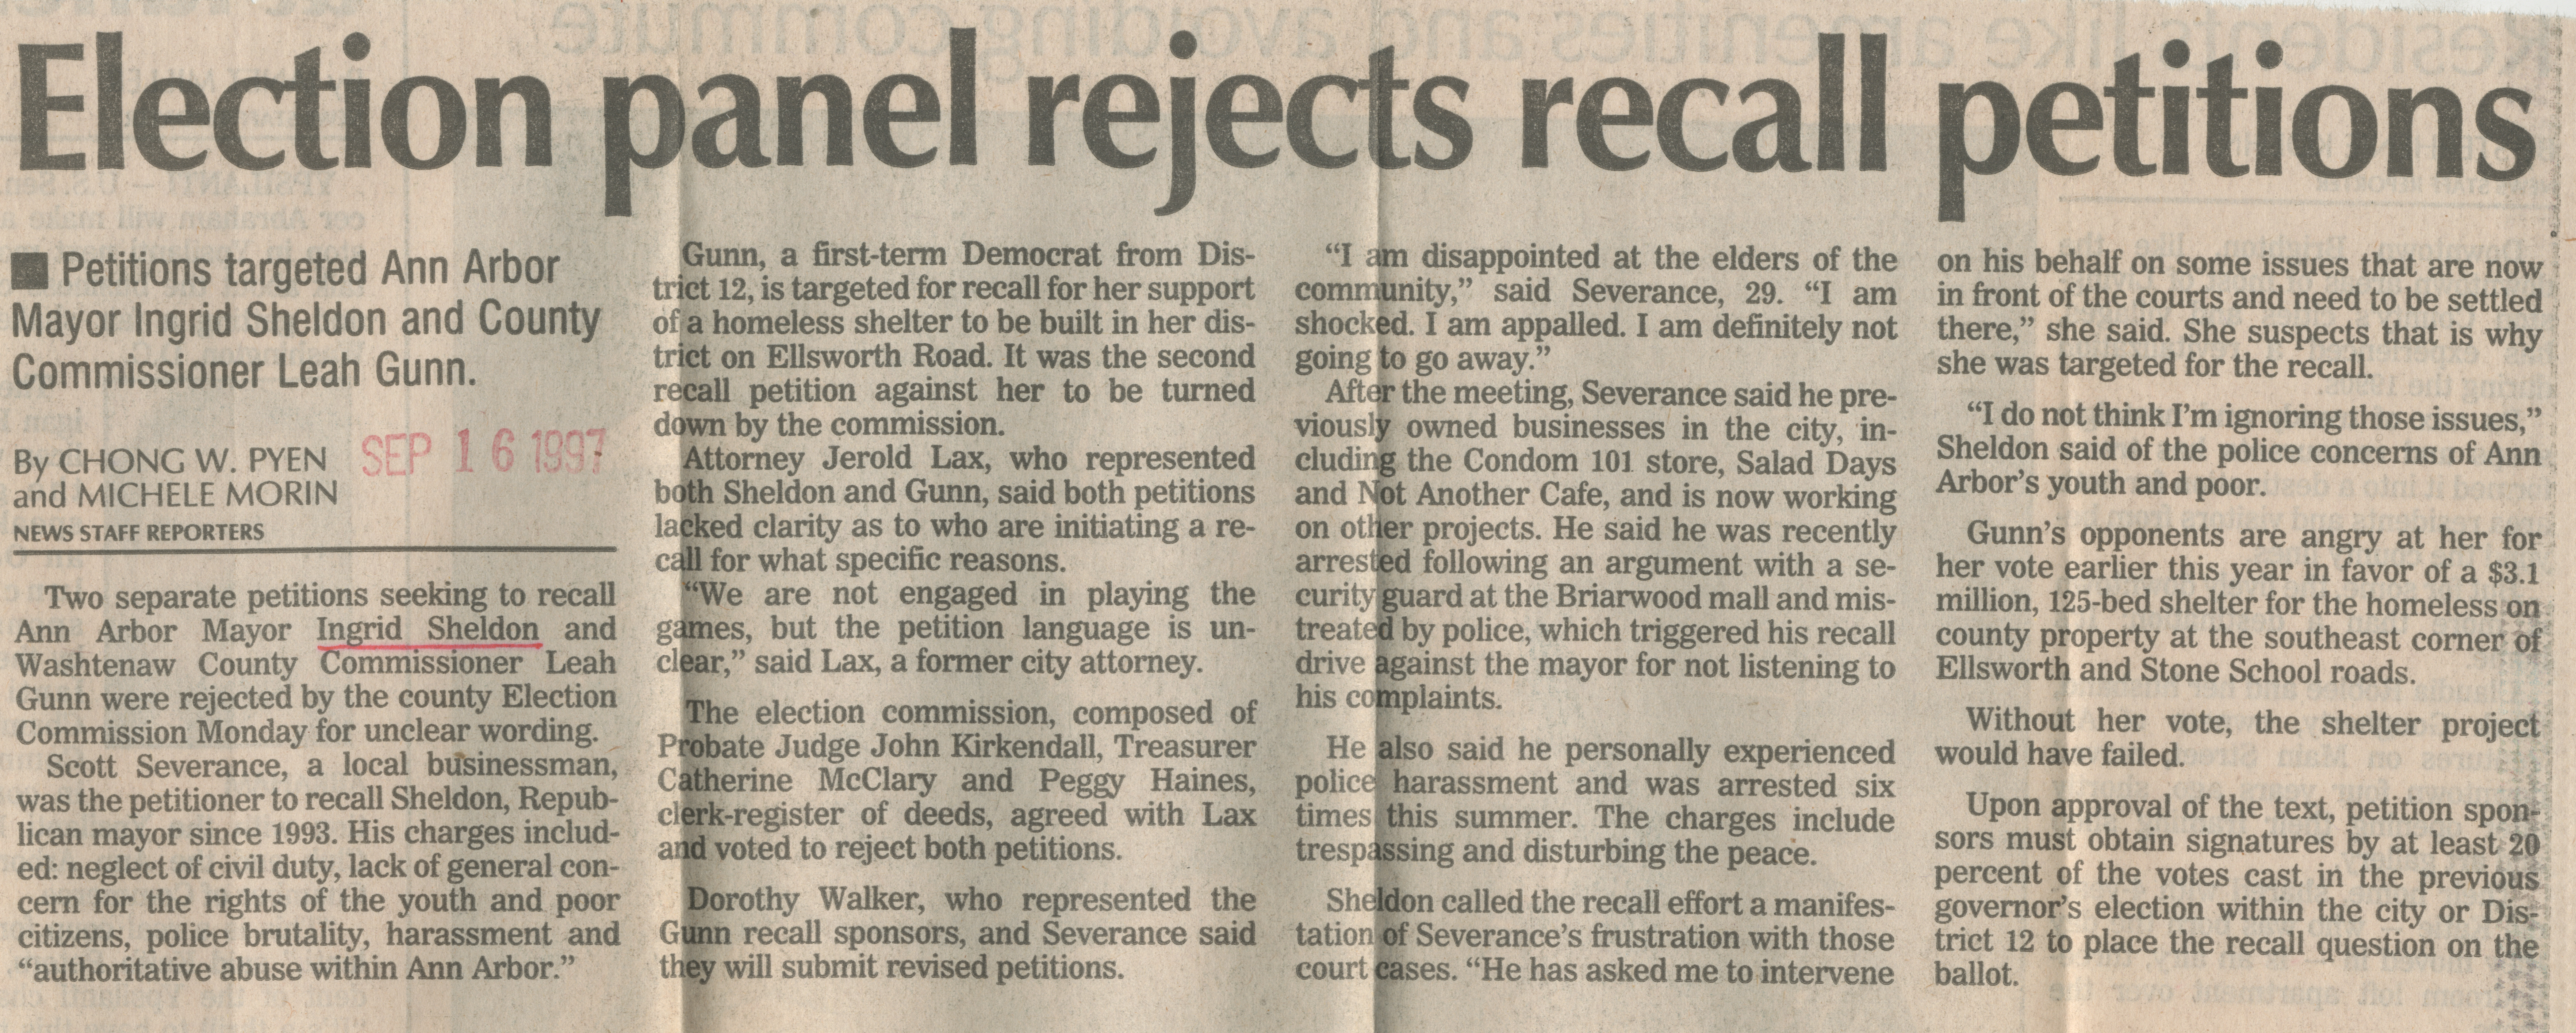 Election panel rejects recall petitions image